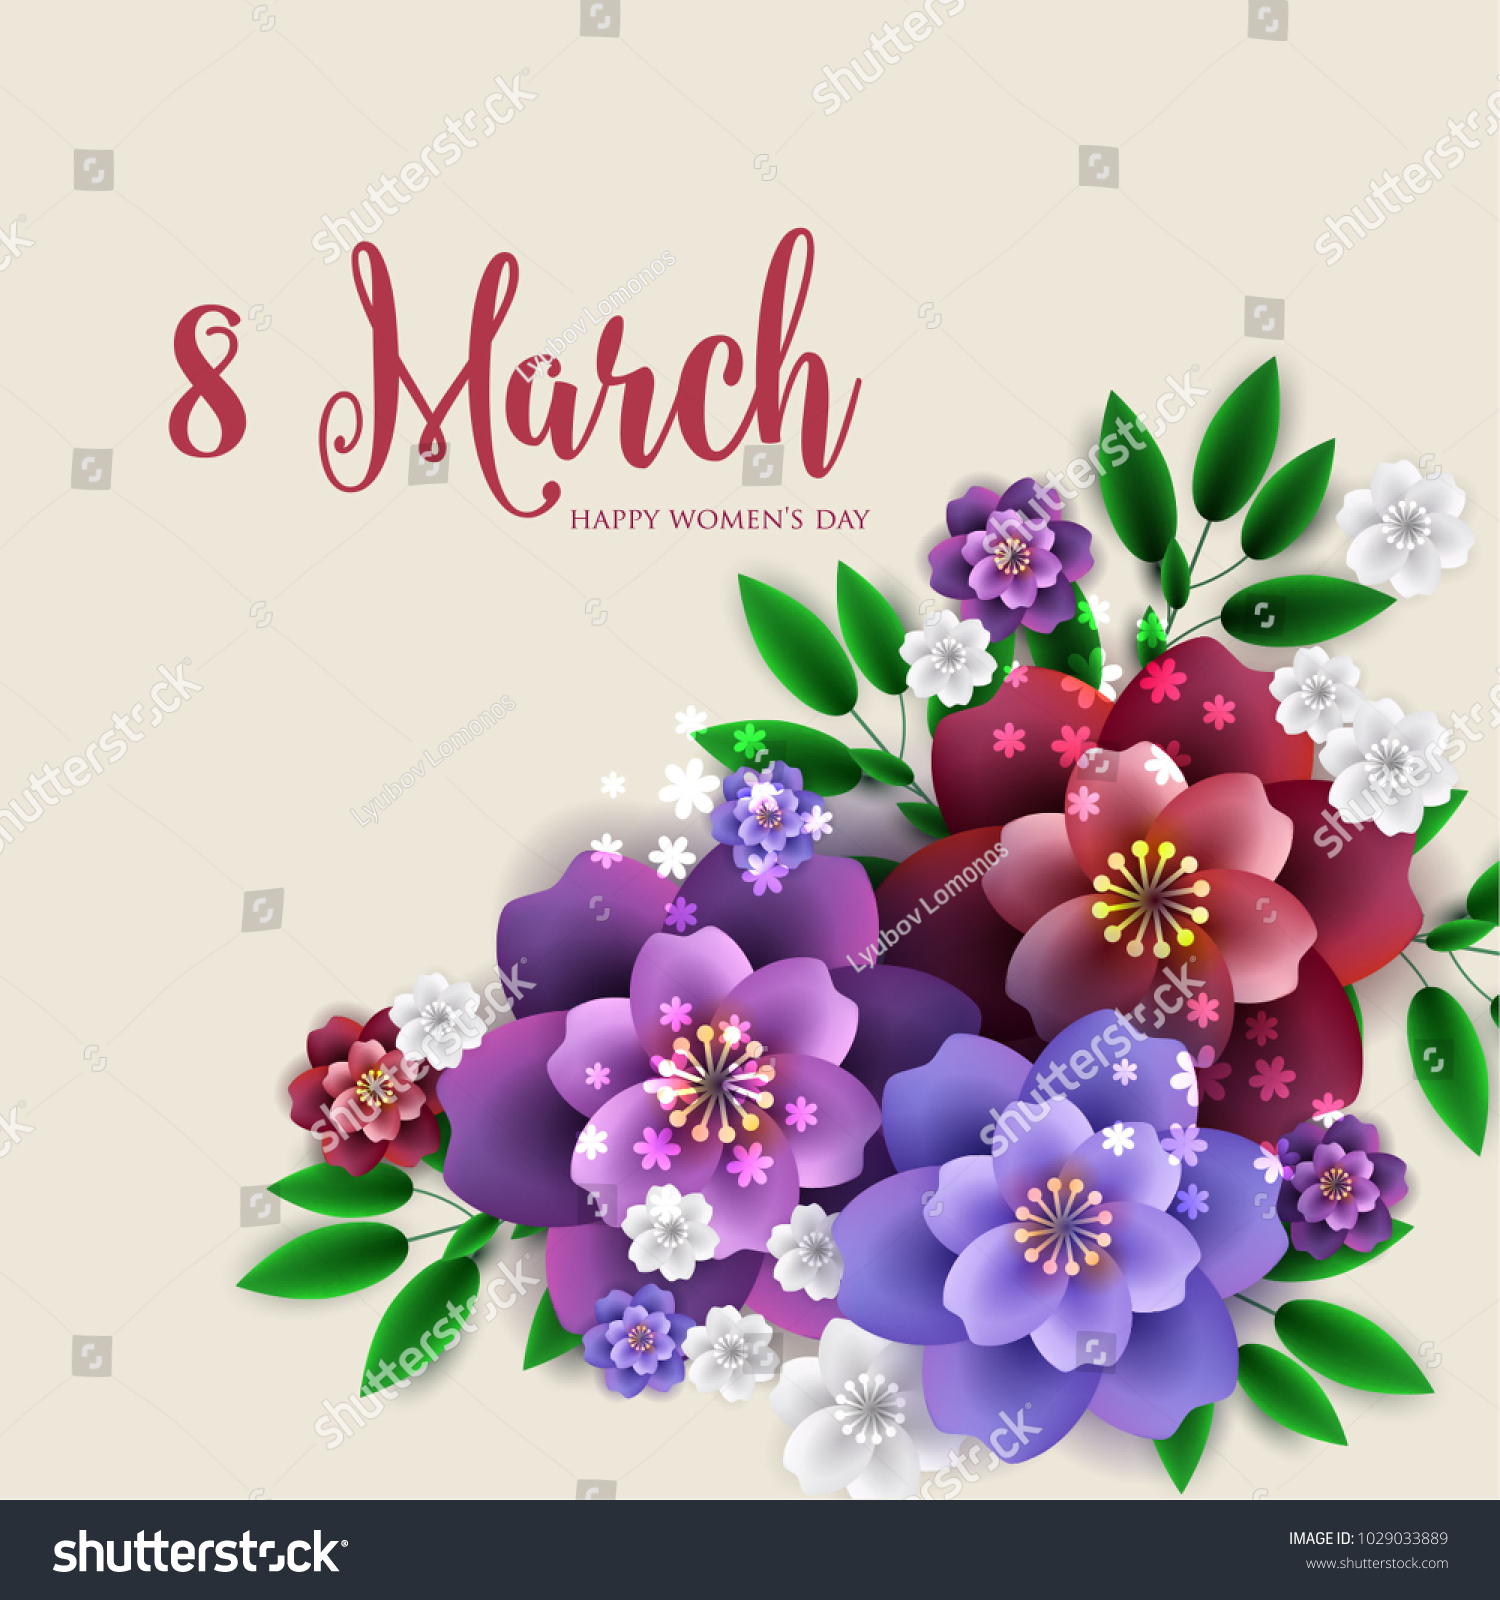 8 March Happy Womens Day Wishes Stock Vector Royalty Free